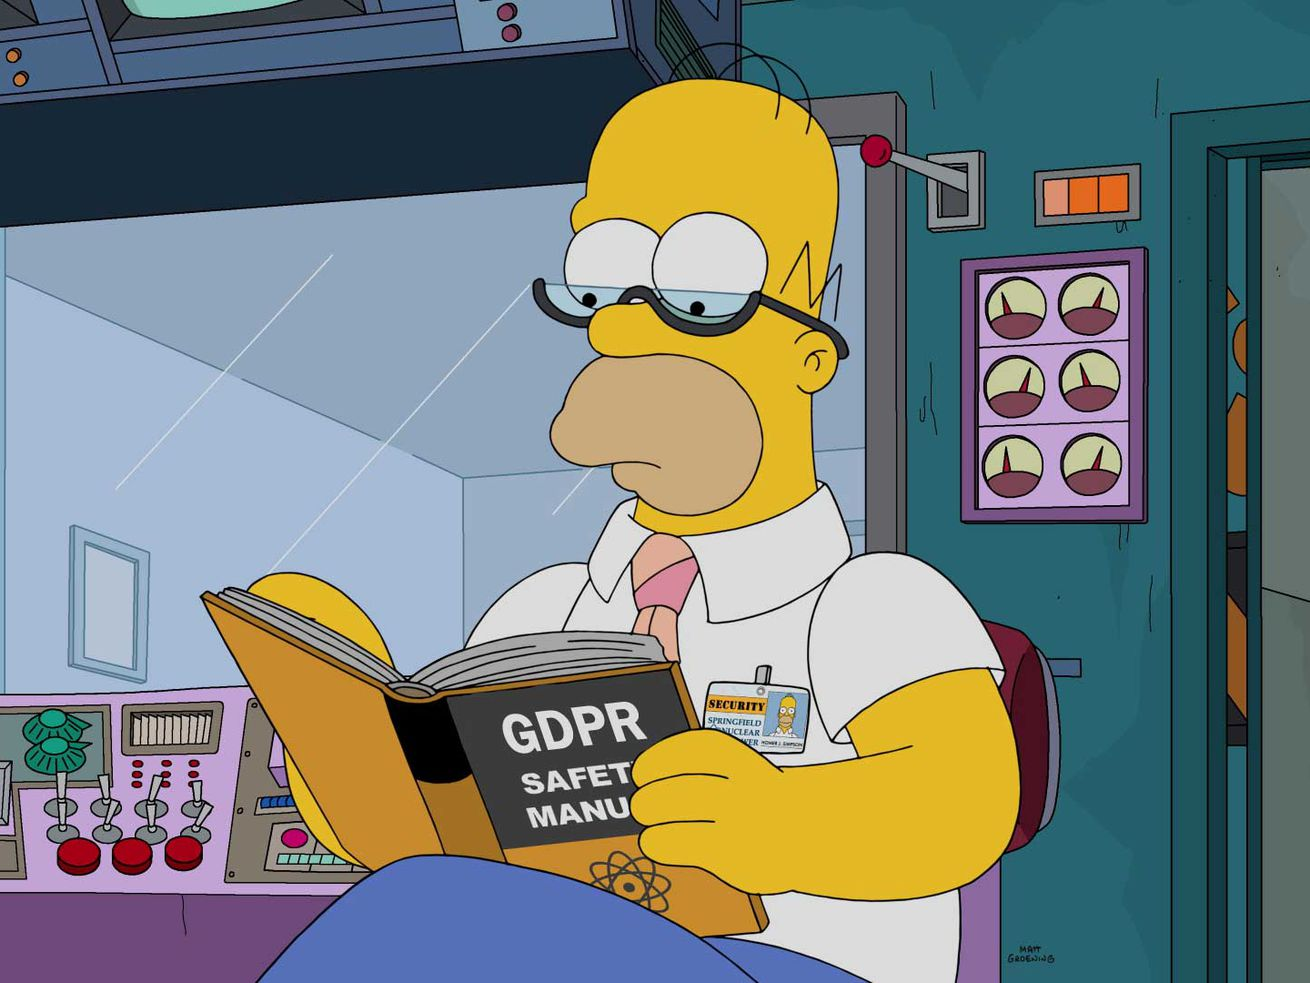 A practical guide to the European Union's GDPR for American businesses